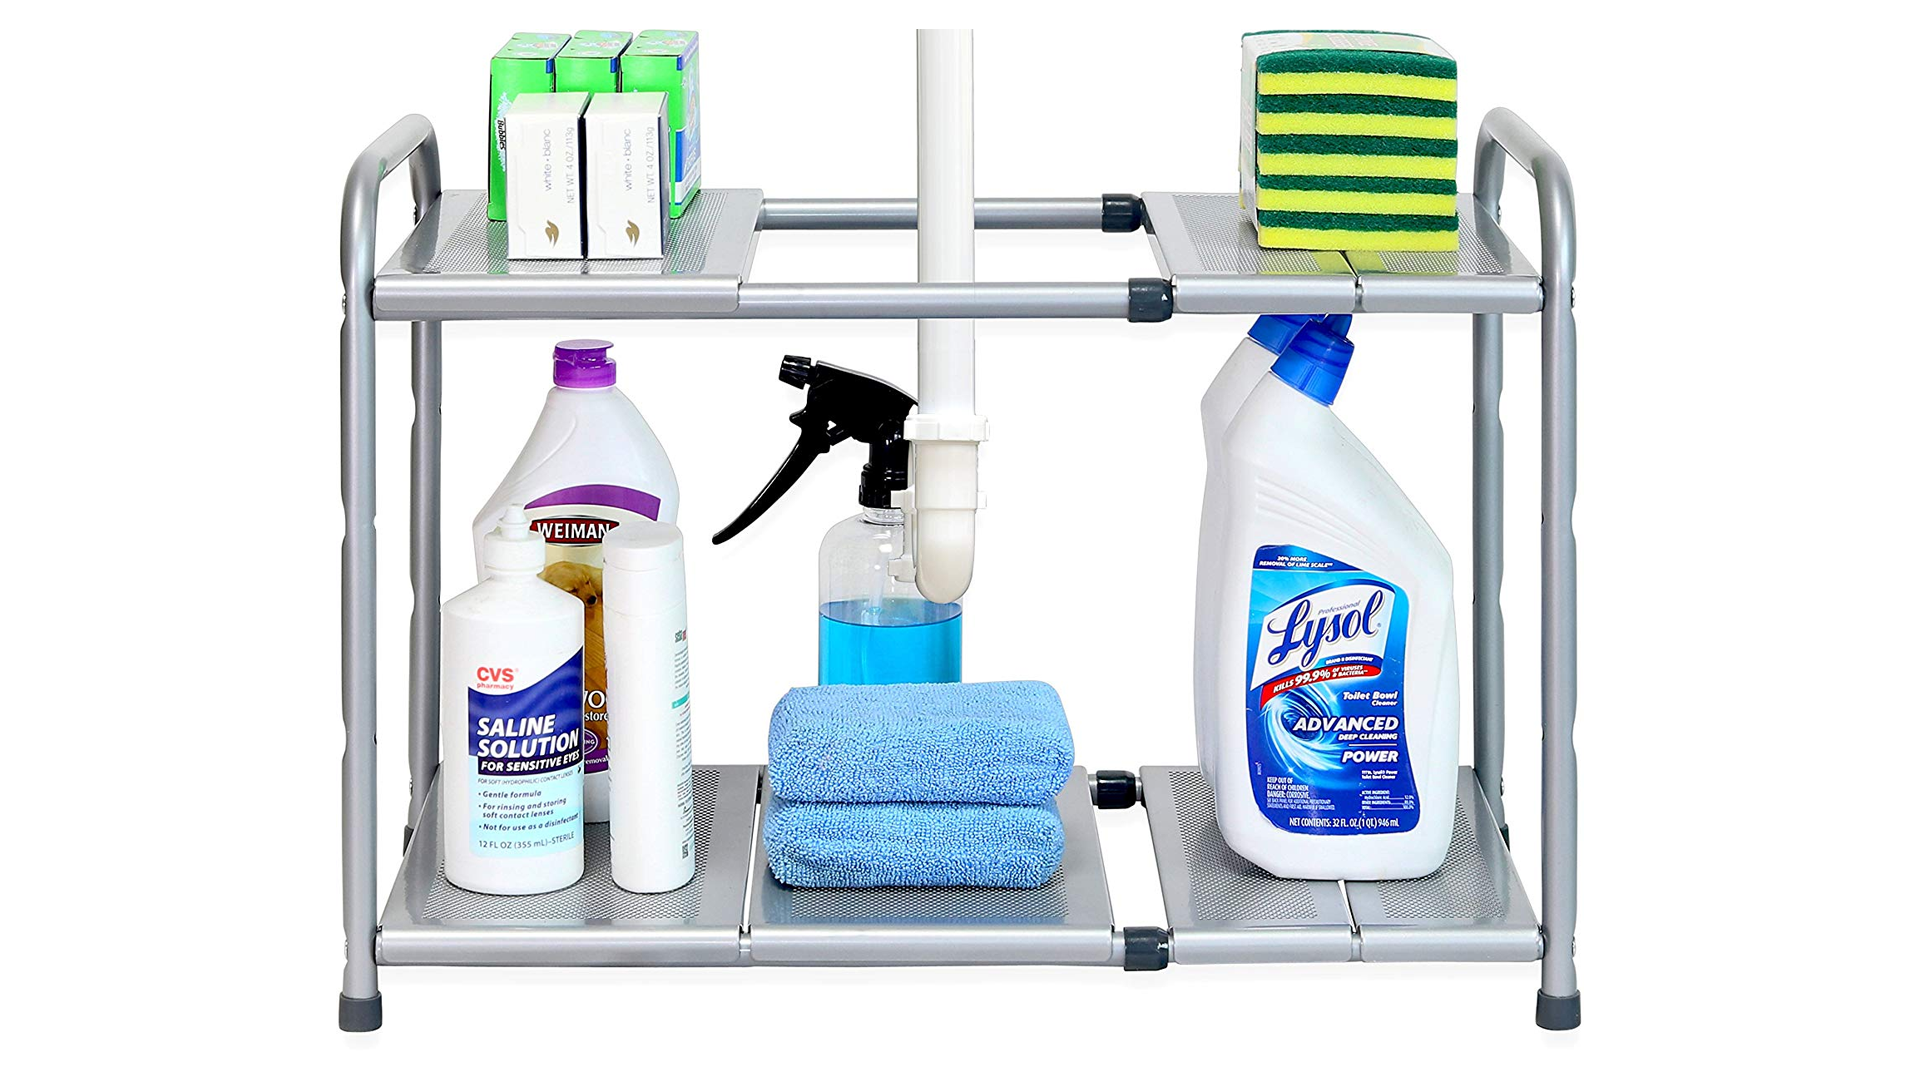 The Simple Houseware 2-tier adjustable shelf.